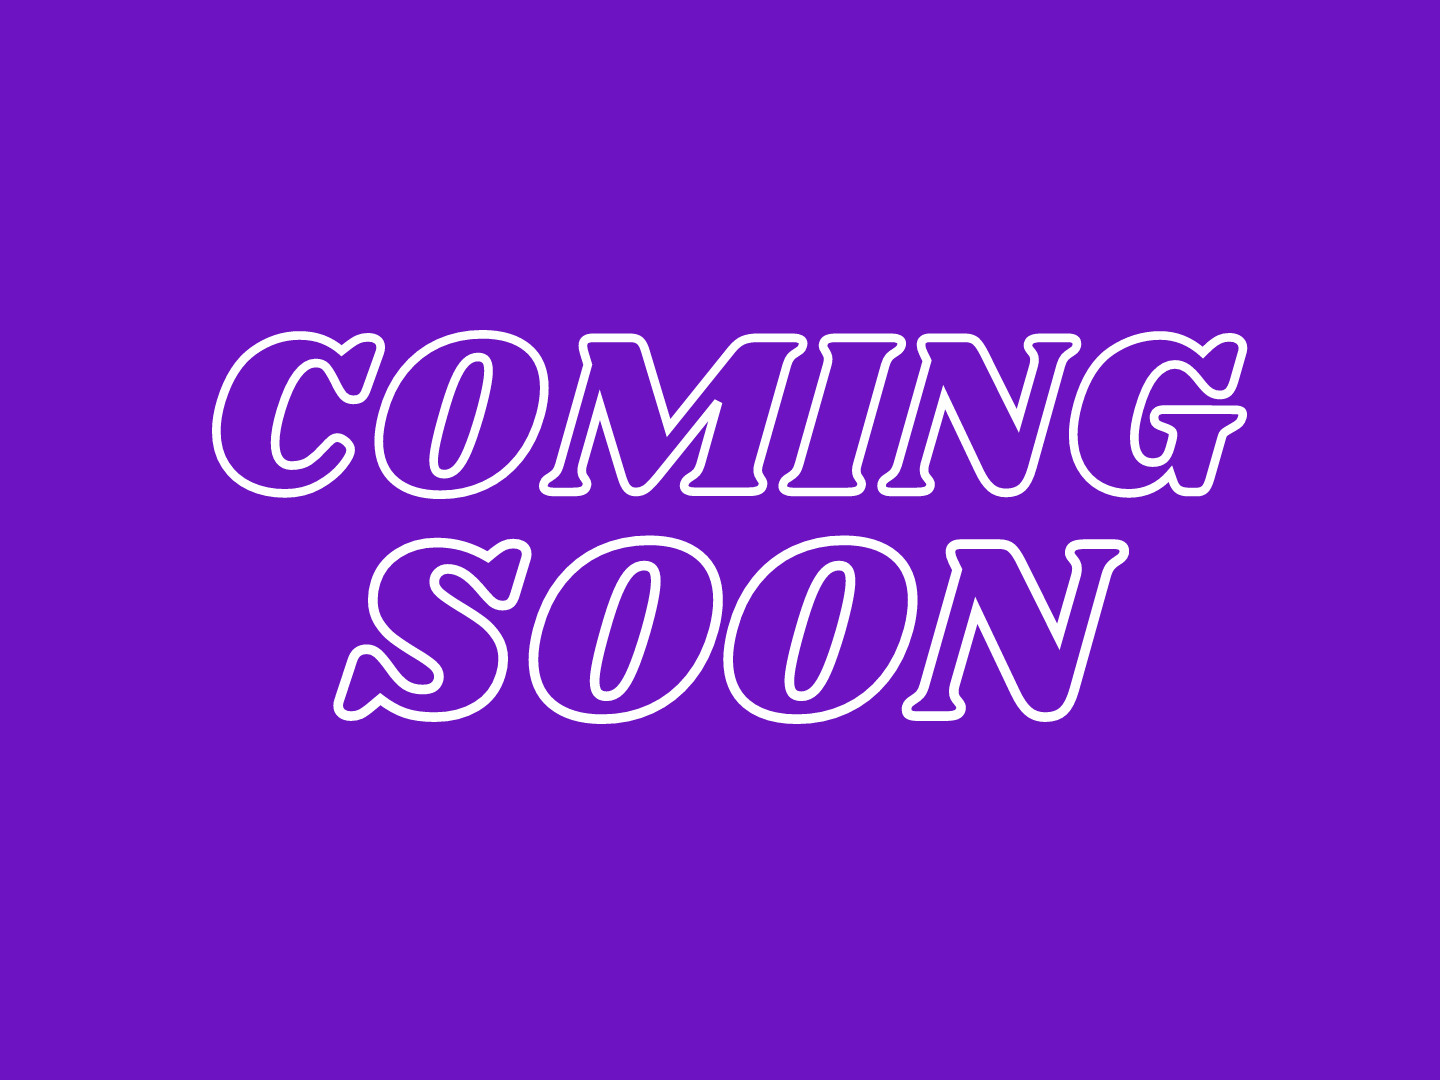 Coming soon written in white on a purple background